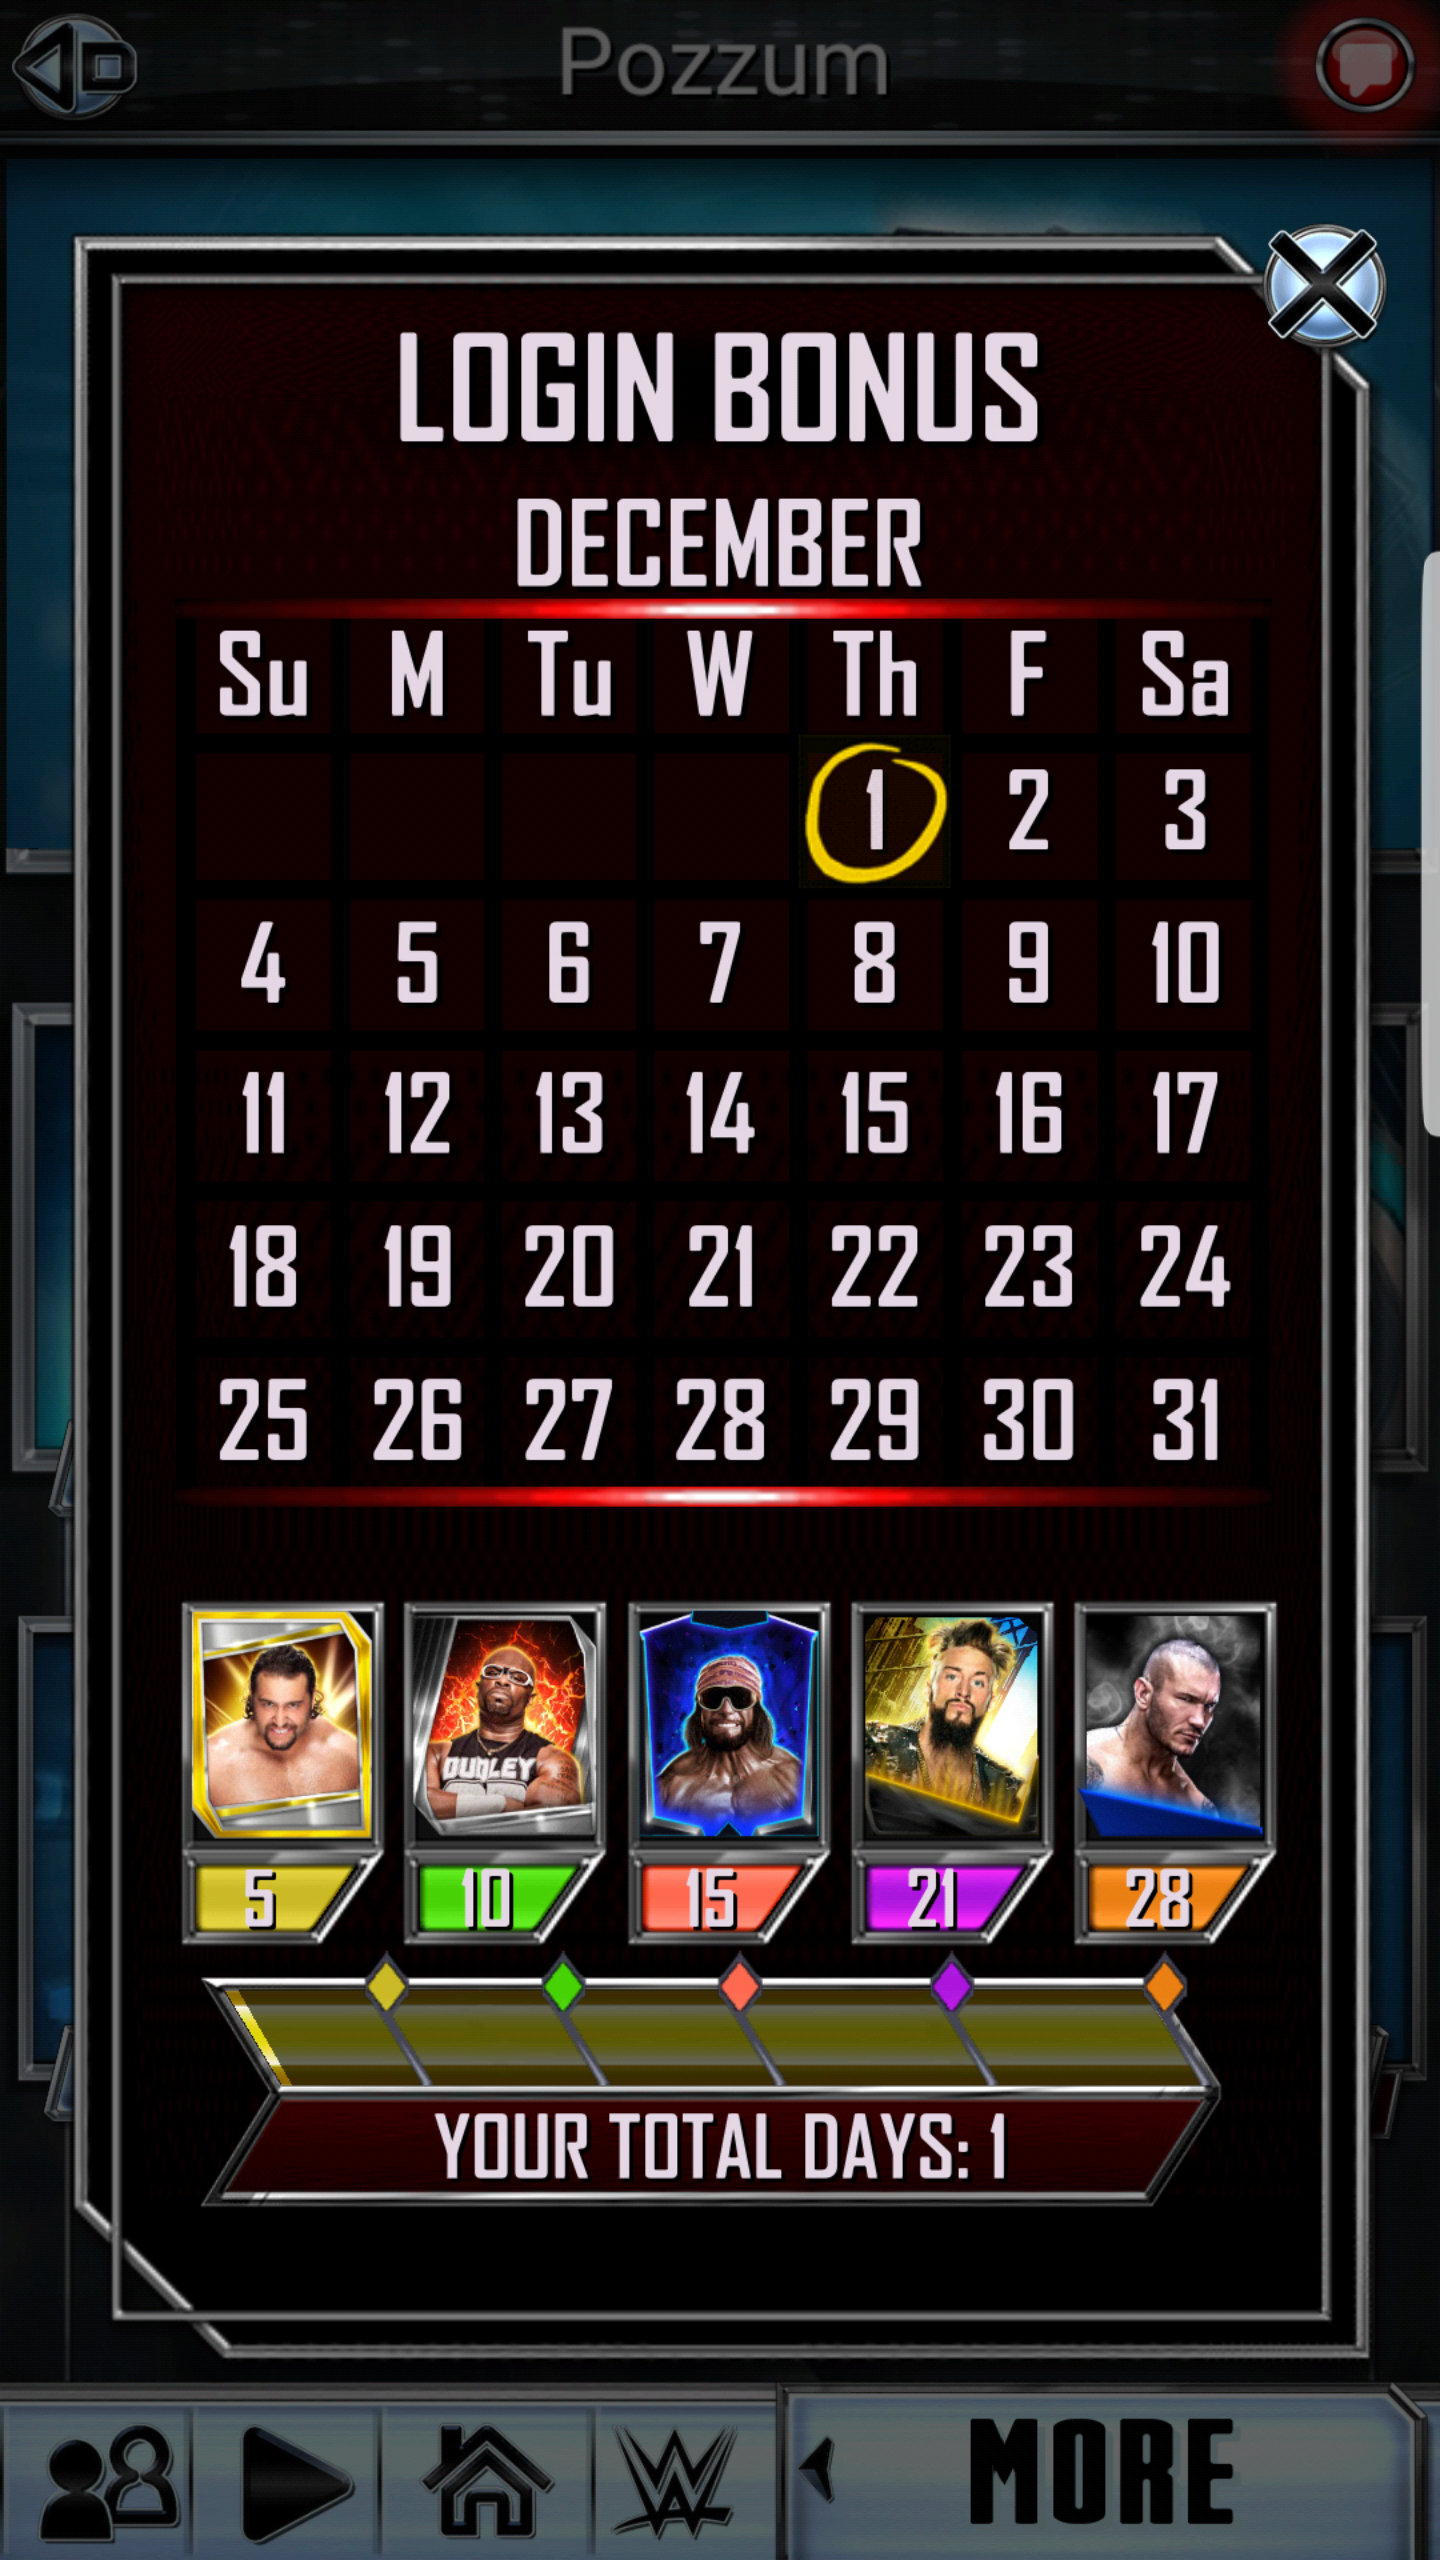 Wwe Supercard Stats Spreadsheet Inside Log In Rewards: December 2016 : Wwesupercard